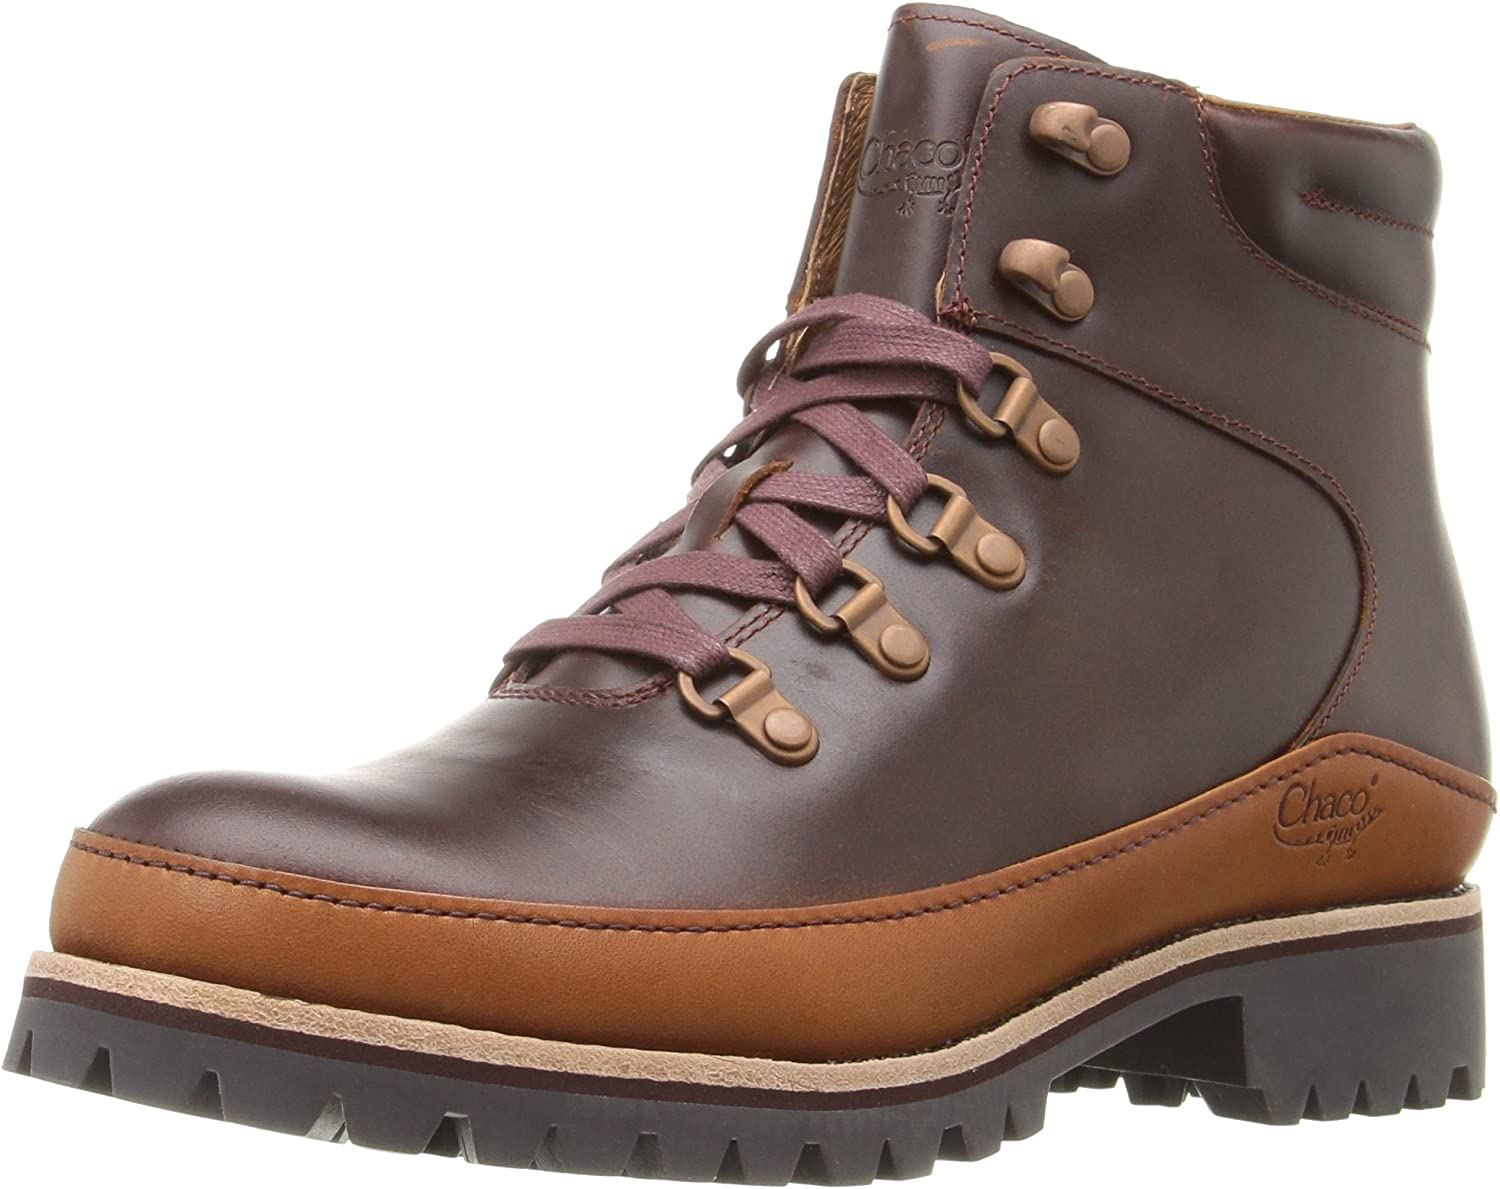 Chaco Woherrar Fields Fields Fields -W Hiking Boot, Rust, 6 M USA  med 100% kvalitet och% 100 service